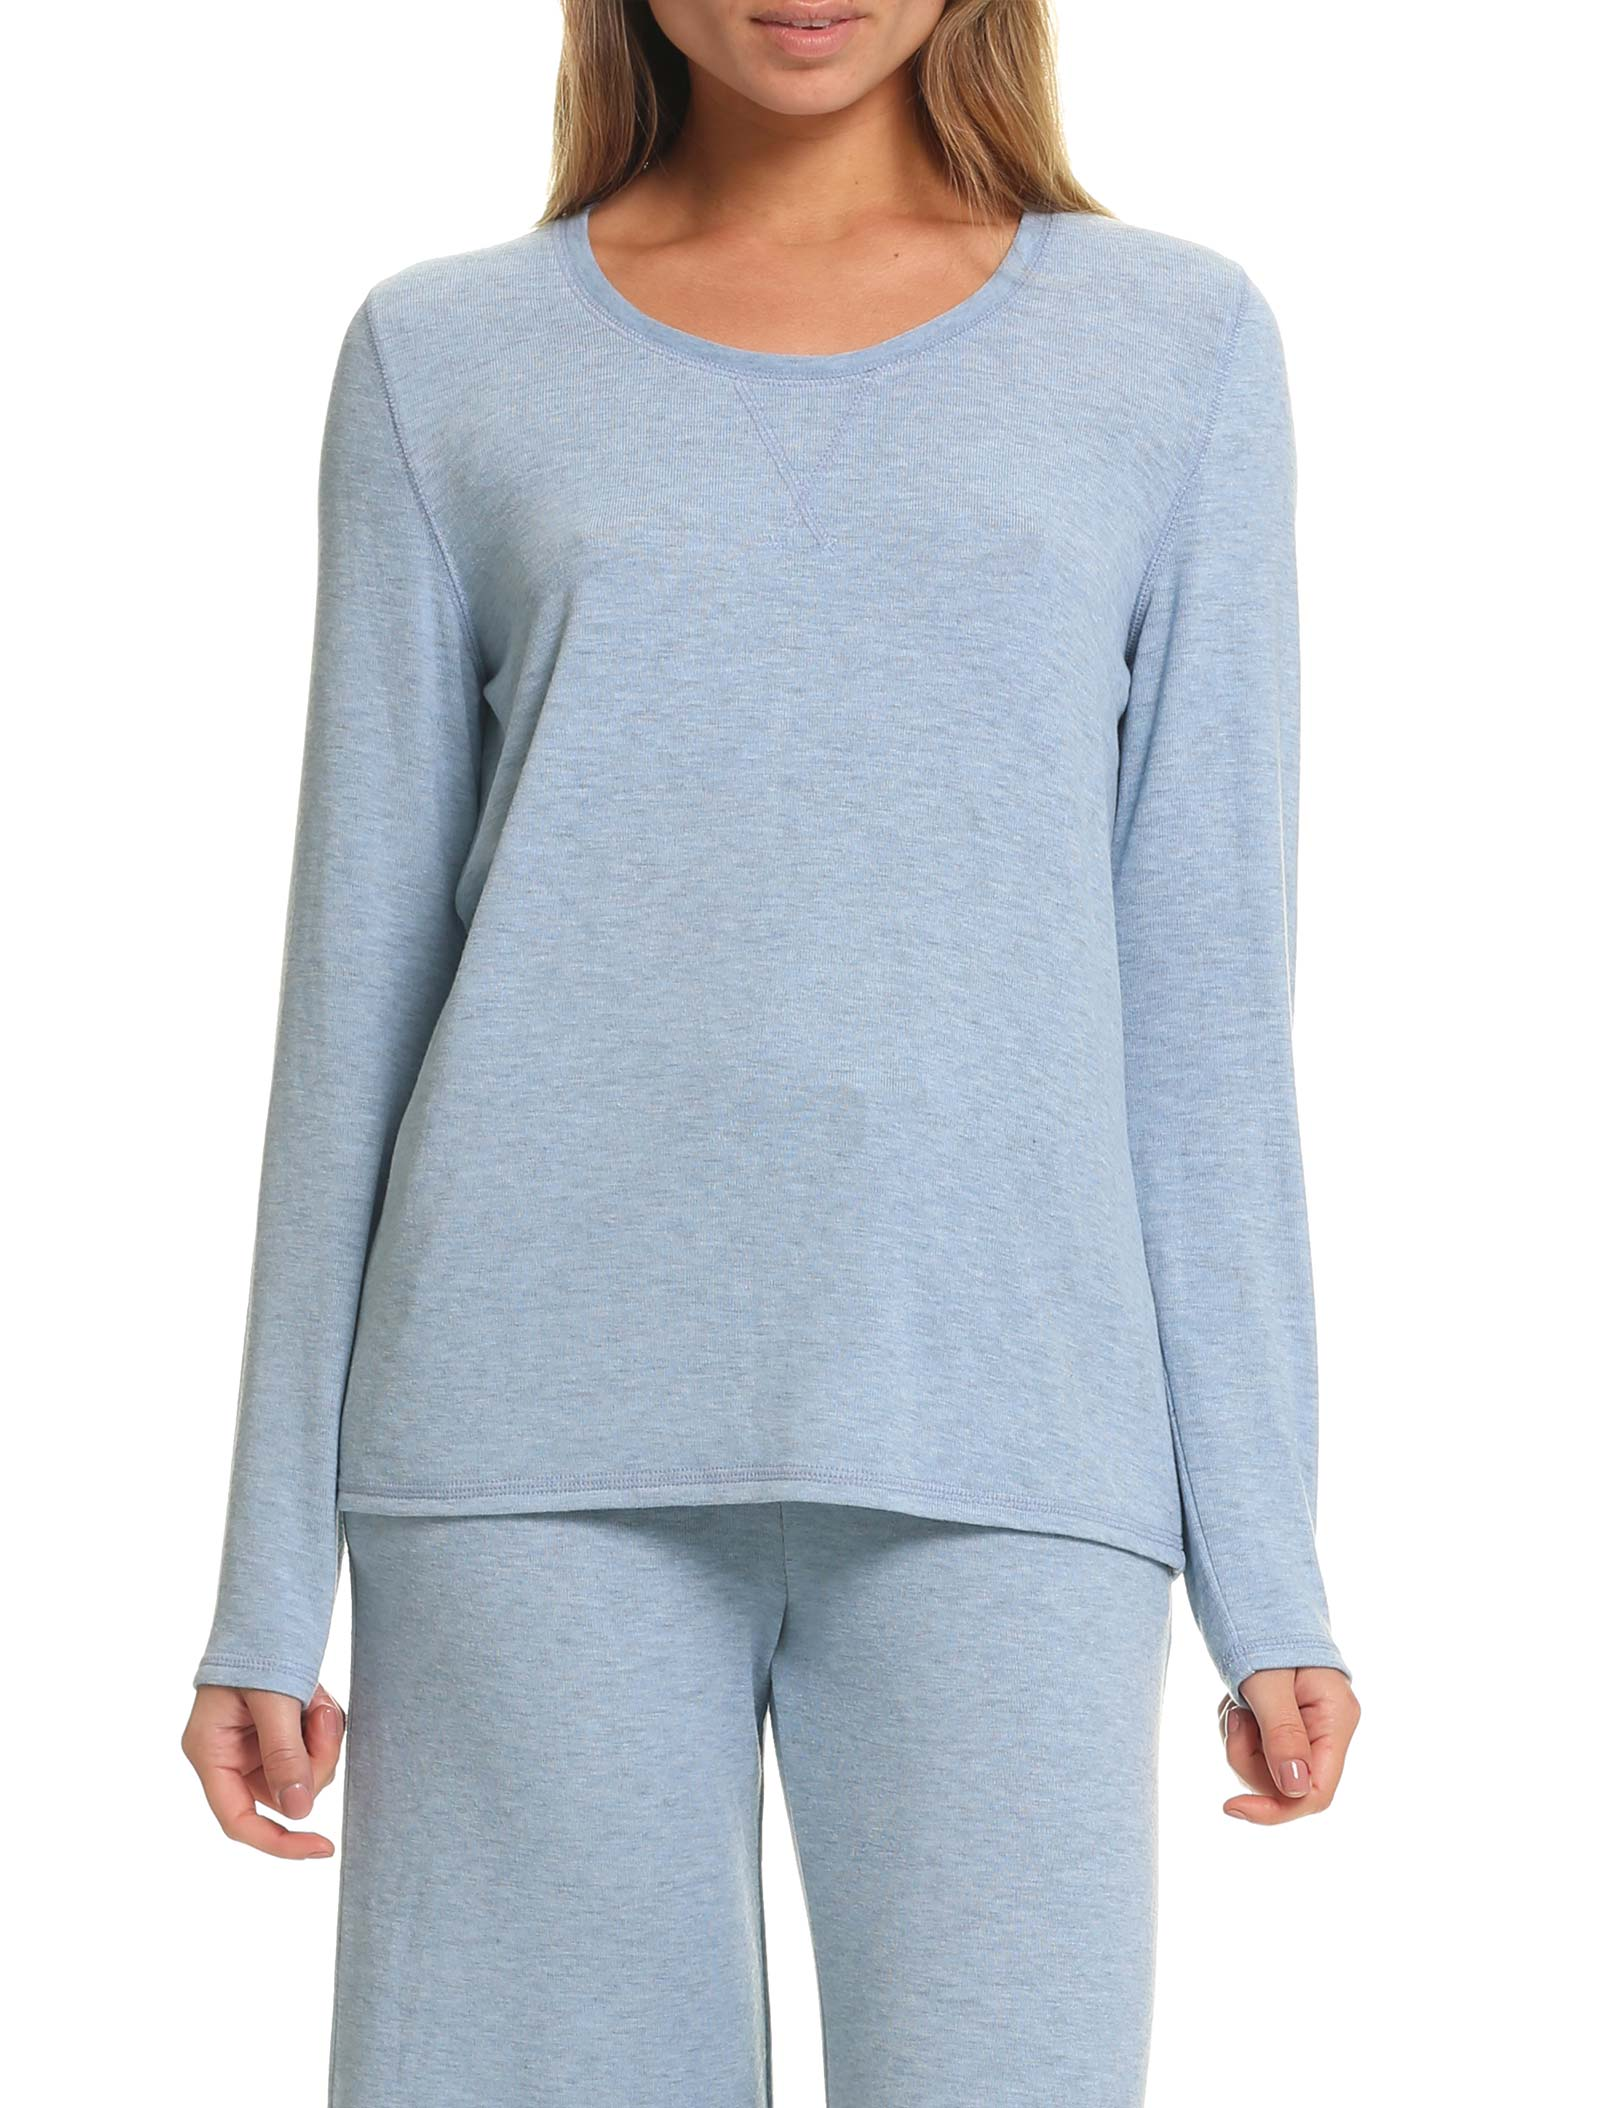 Feather Soft Long Sleeve Top in Powder Blue